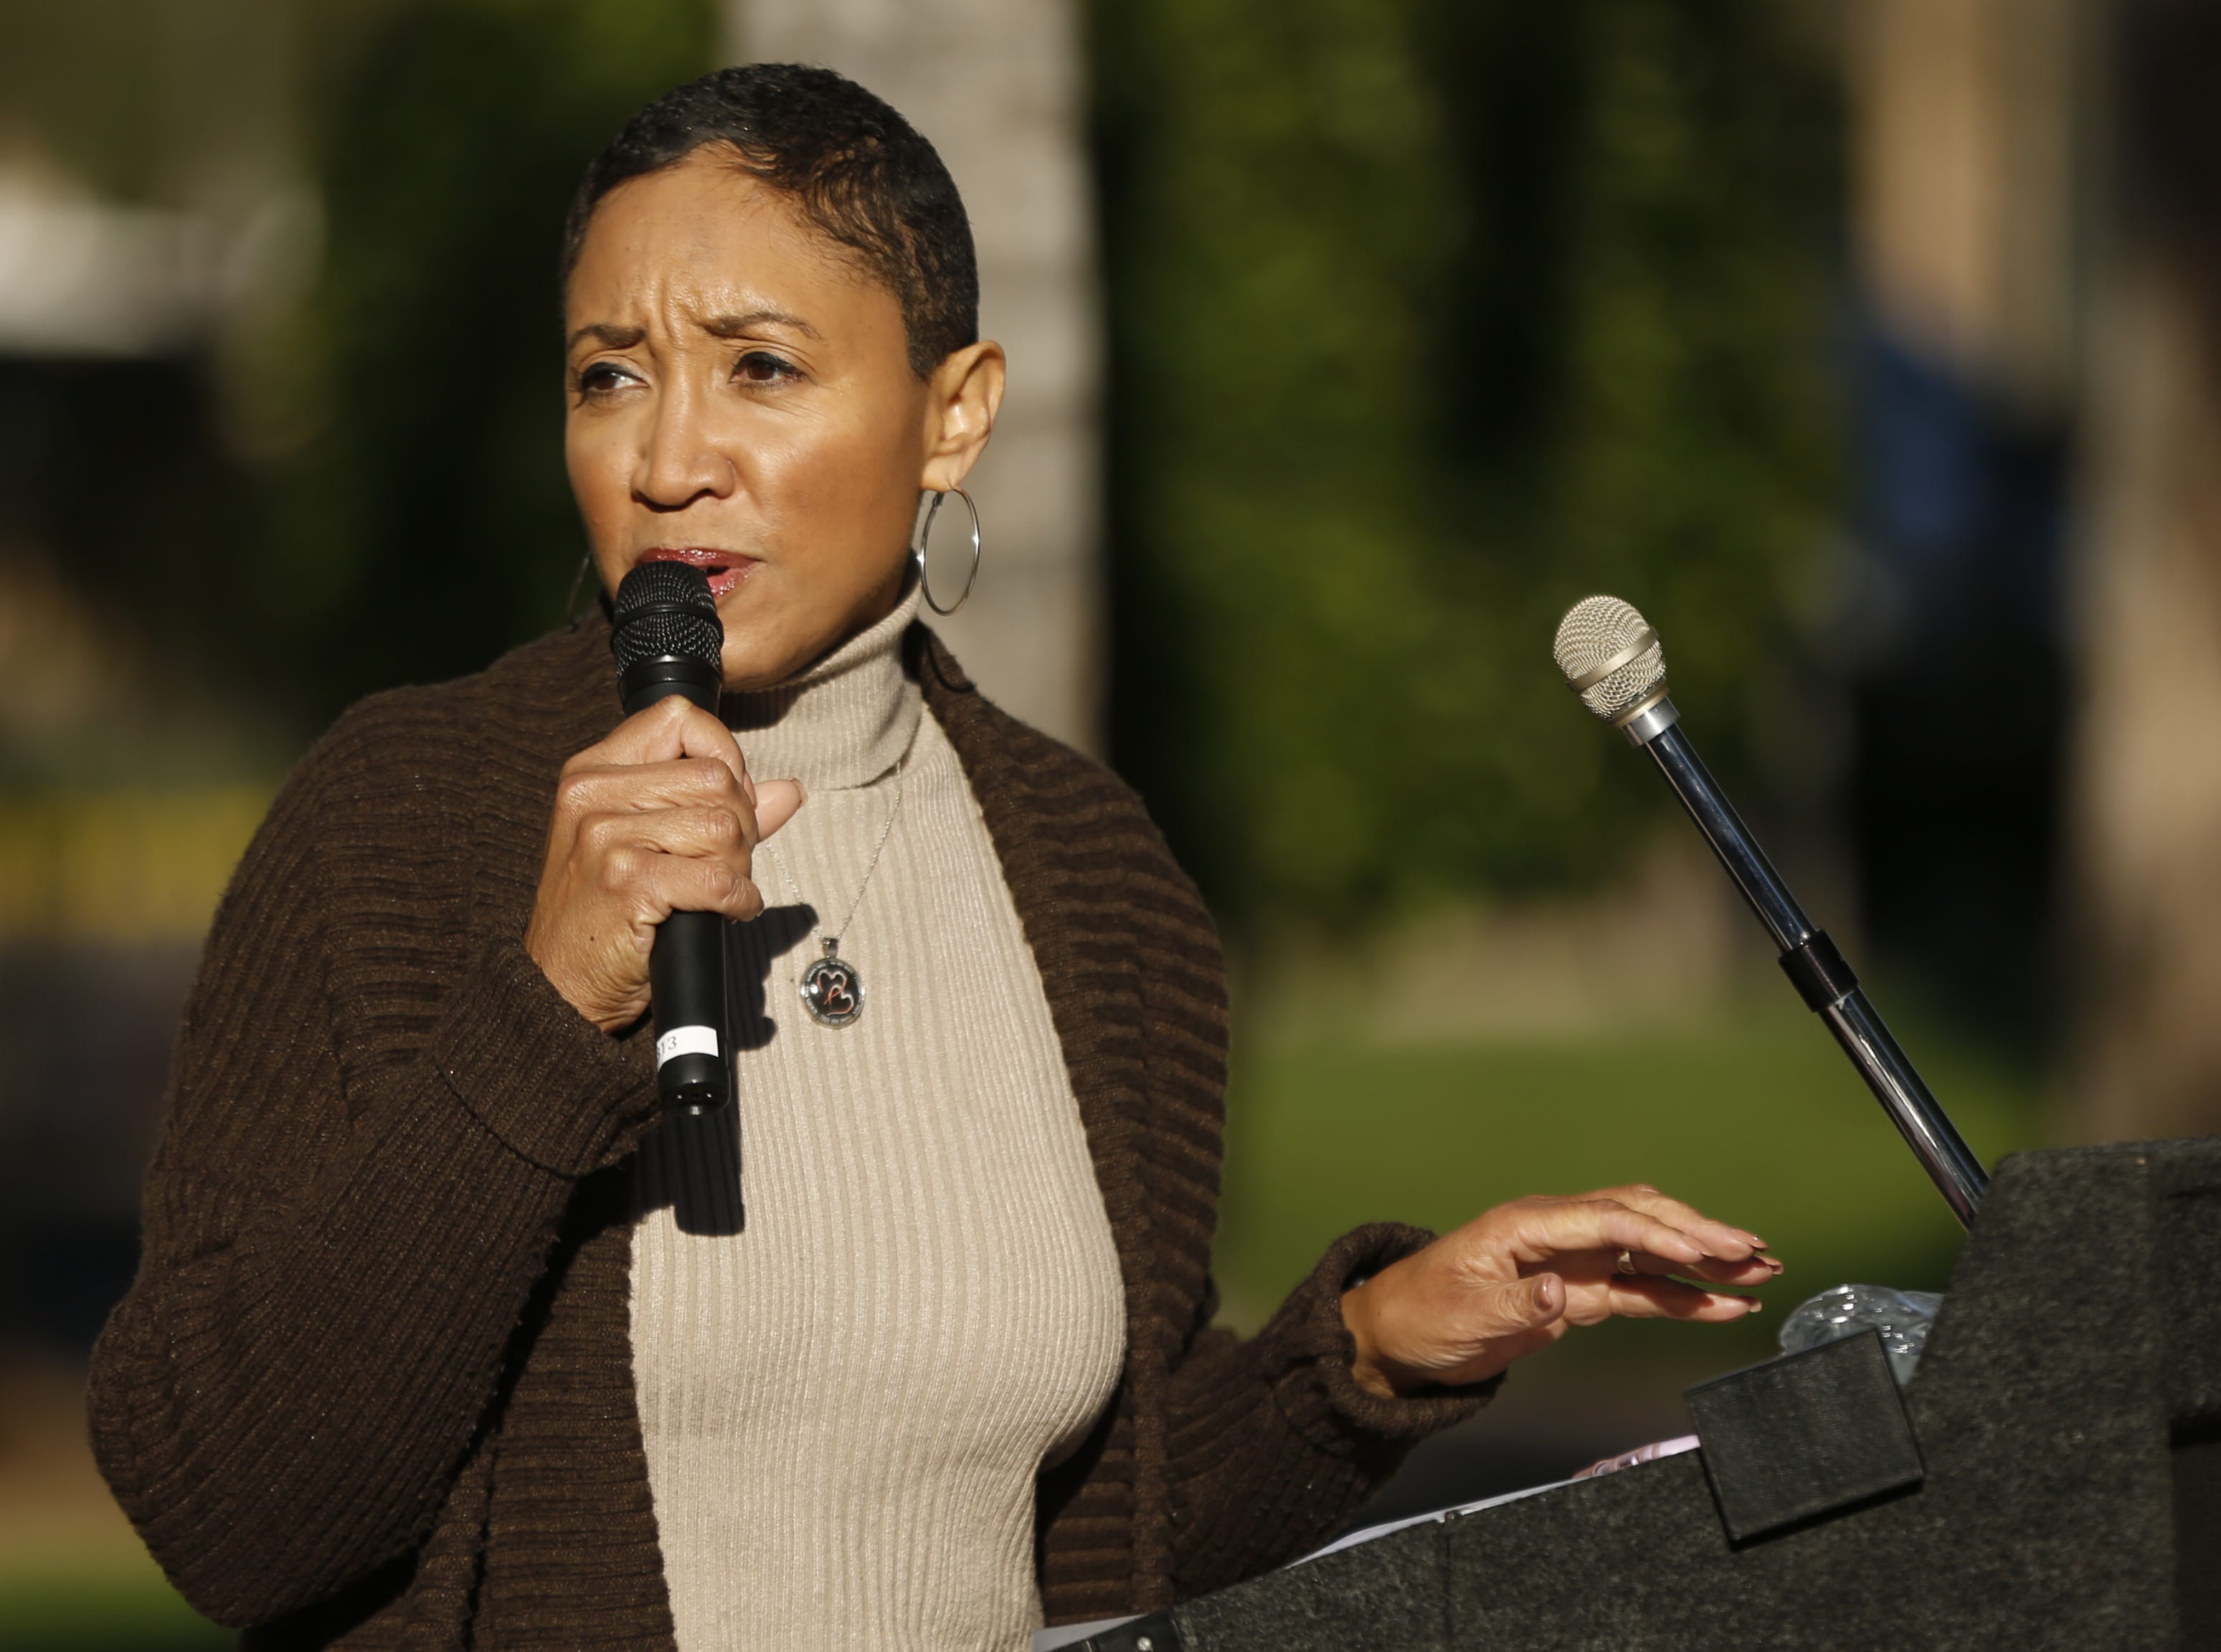 Janelle Wood speaks during a gathering for the Black Women's March before the start of the Women's March outside the Arizona Capitol in Phoenix, Ariz. on January 19, 2019.